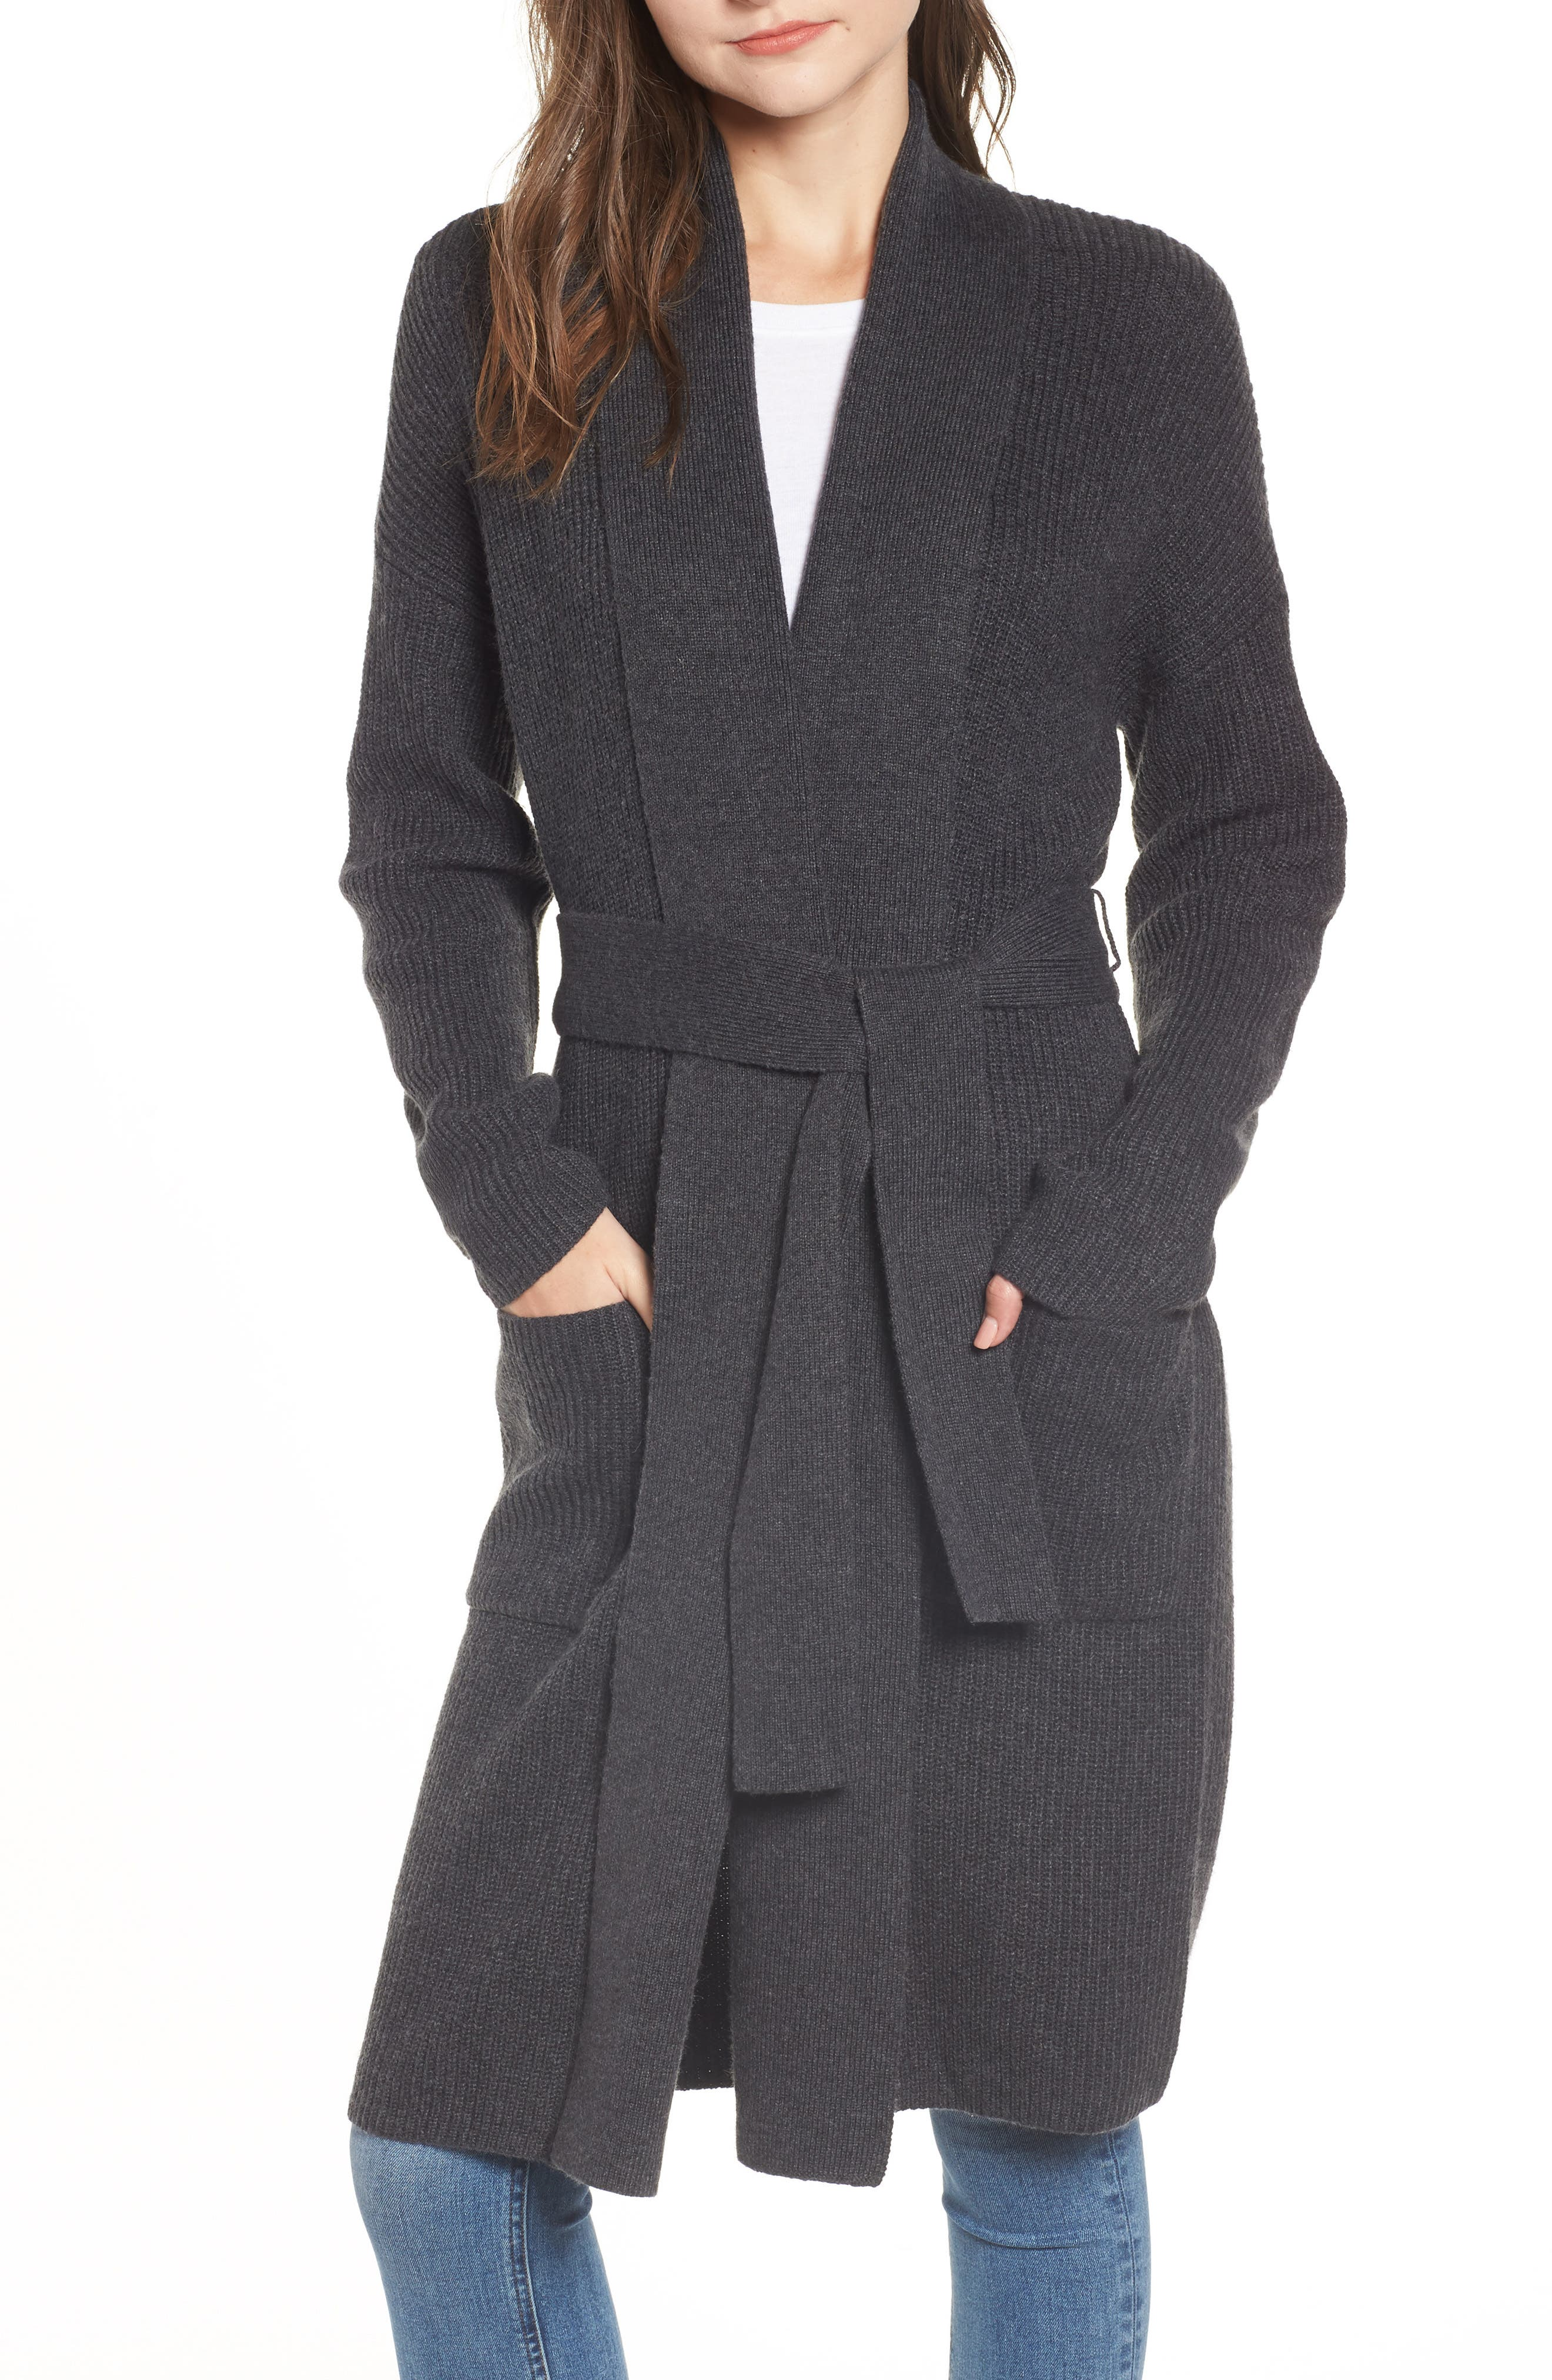 Chelsea28 Belted Cardigan, Grey